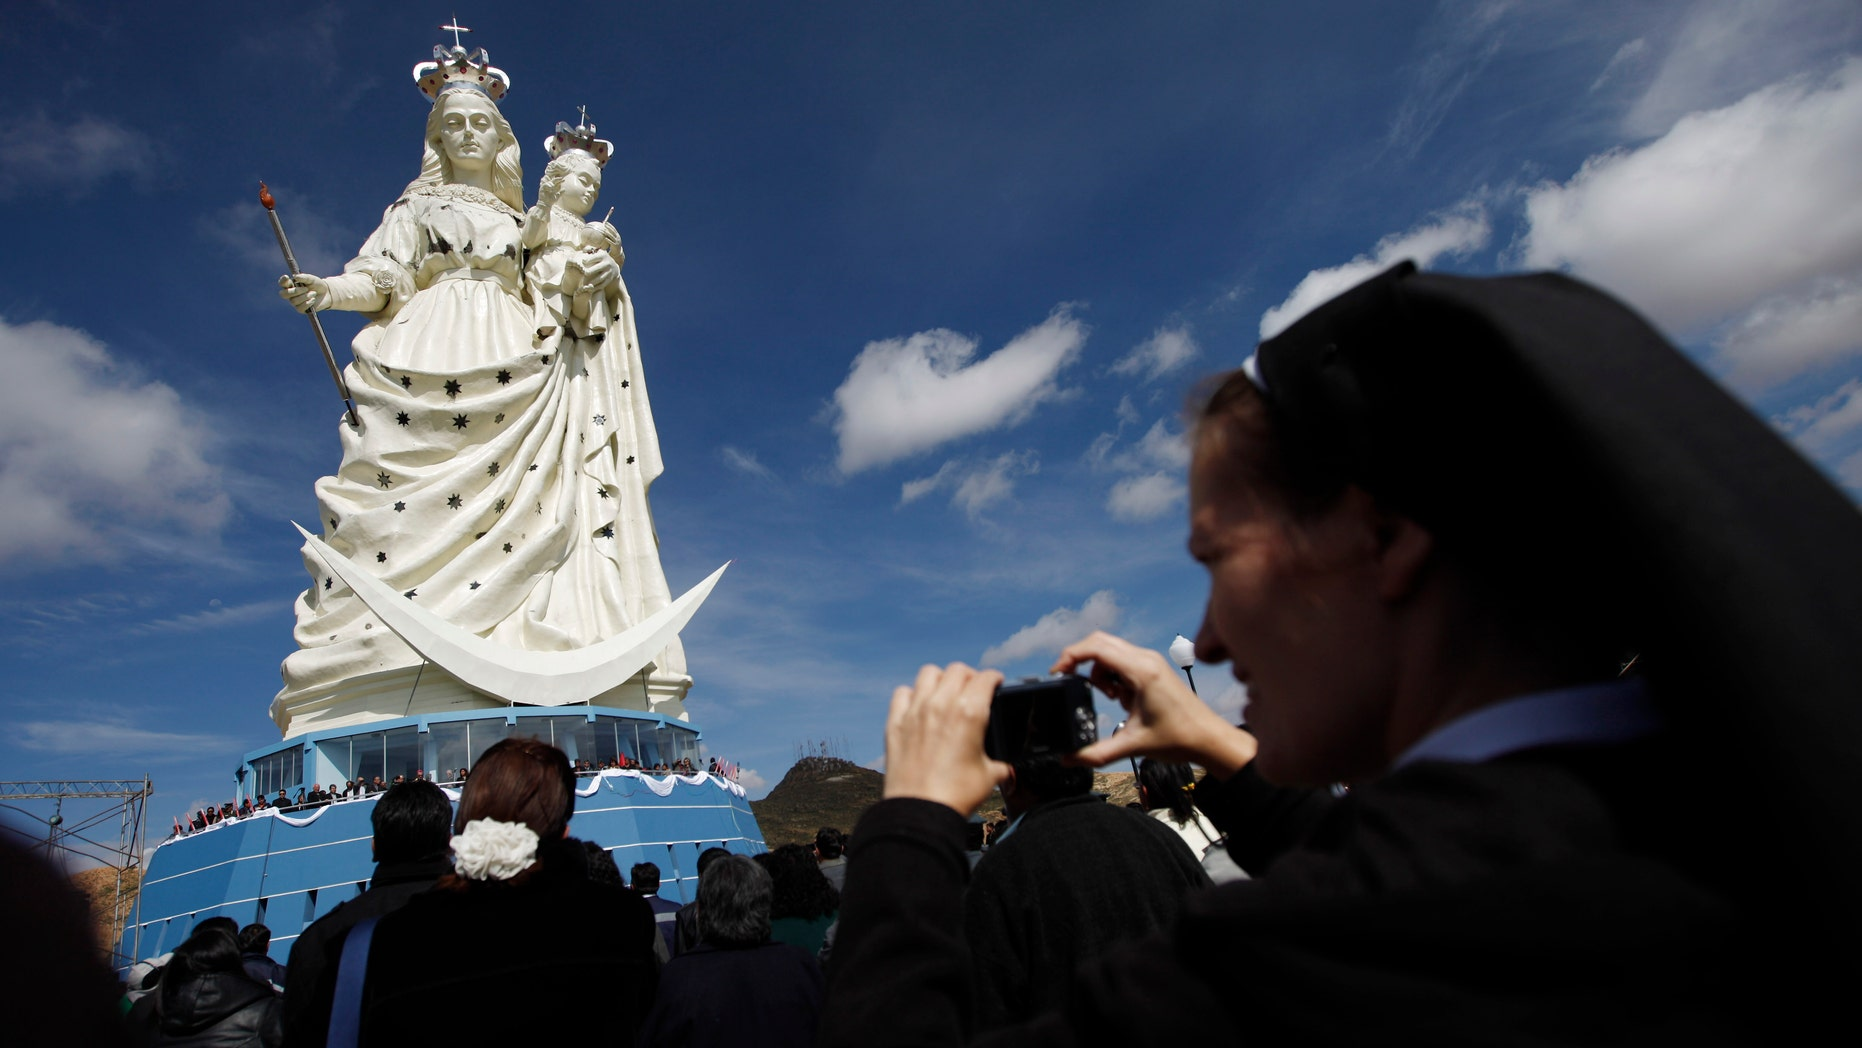 """A nun takes pictures of a newly unveiled statue of the Virgin Mary holding a baby Jesus on Santa Barbara hill in the mining city of Oruro, Bolivia. The 45 meter (147 feet) statue that took four years to build, known in Spanish as """"Virgen del Socavón,"""" or the Virgin of the Tunnel, is Oruro's patron, venerated in particular by miners and folkloric Carnival dancers. (AP Photo/Juan Karita)"""